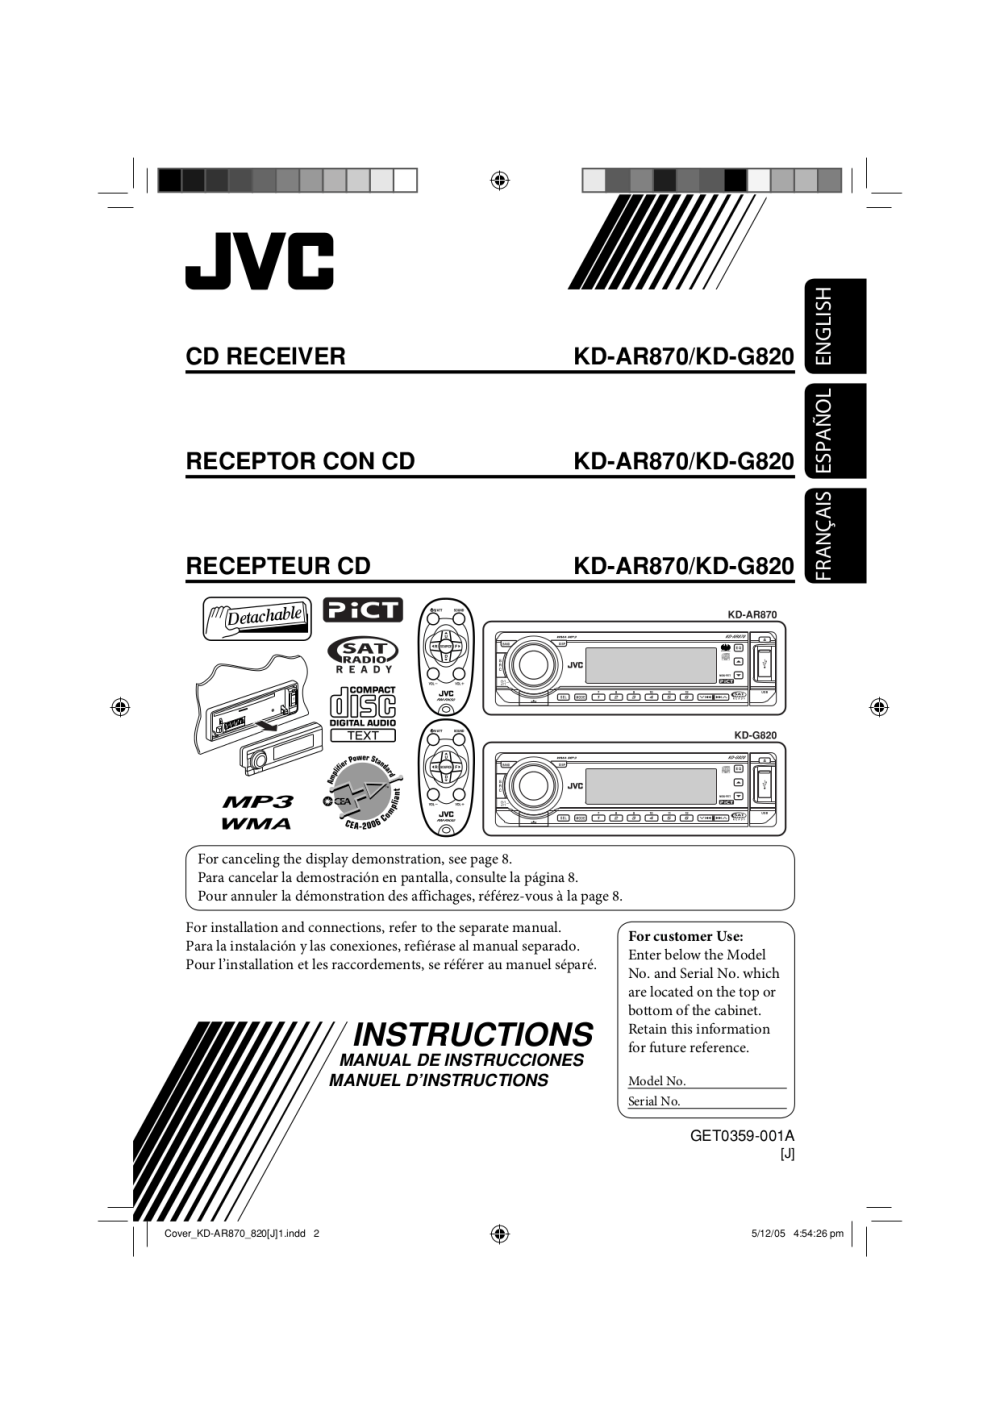 medium resolution of manual database jvc changing display information circuit diagram circuit diagram but language understandable all jvc manual applied following one